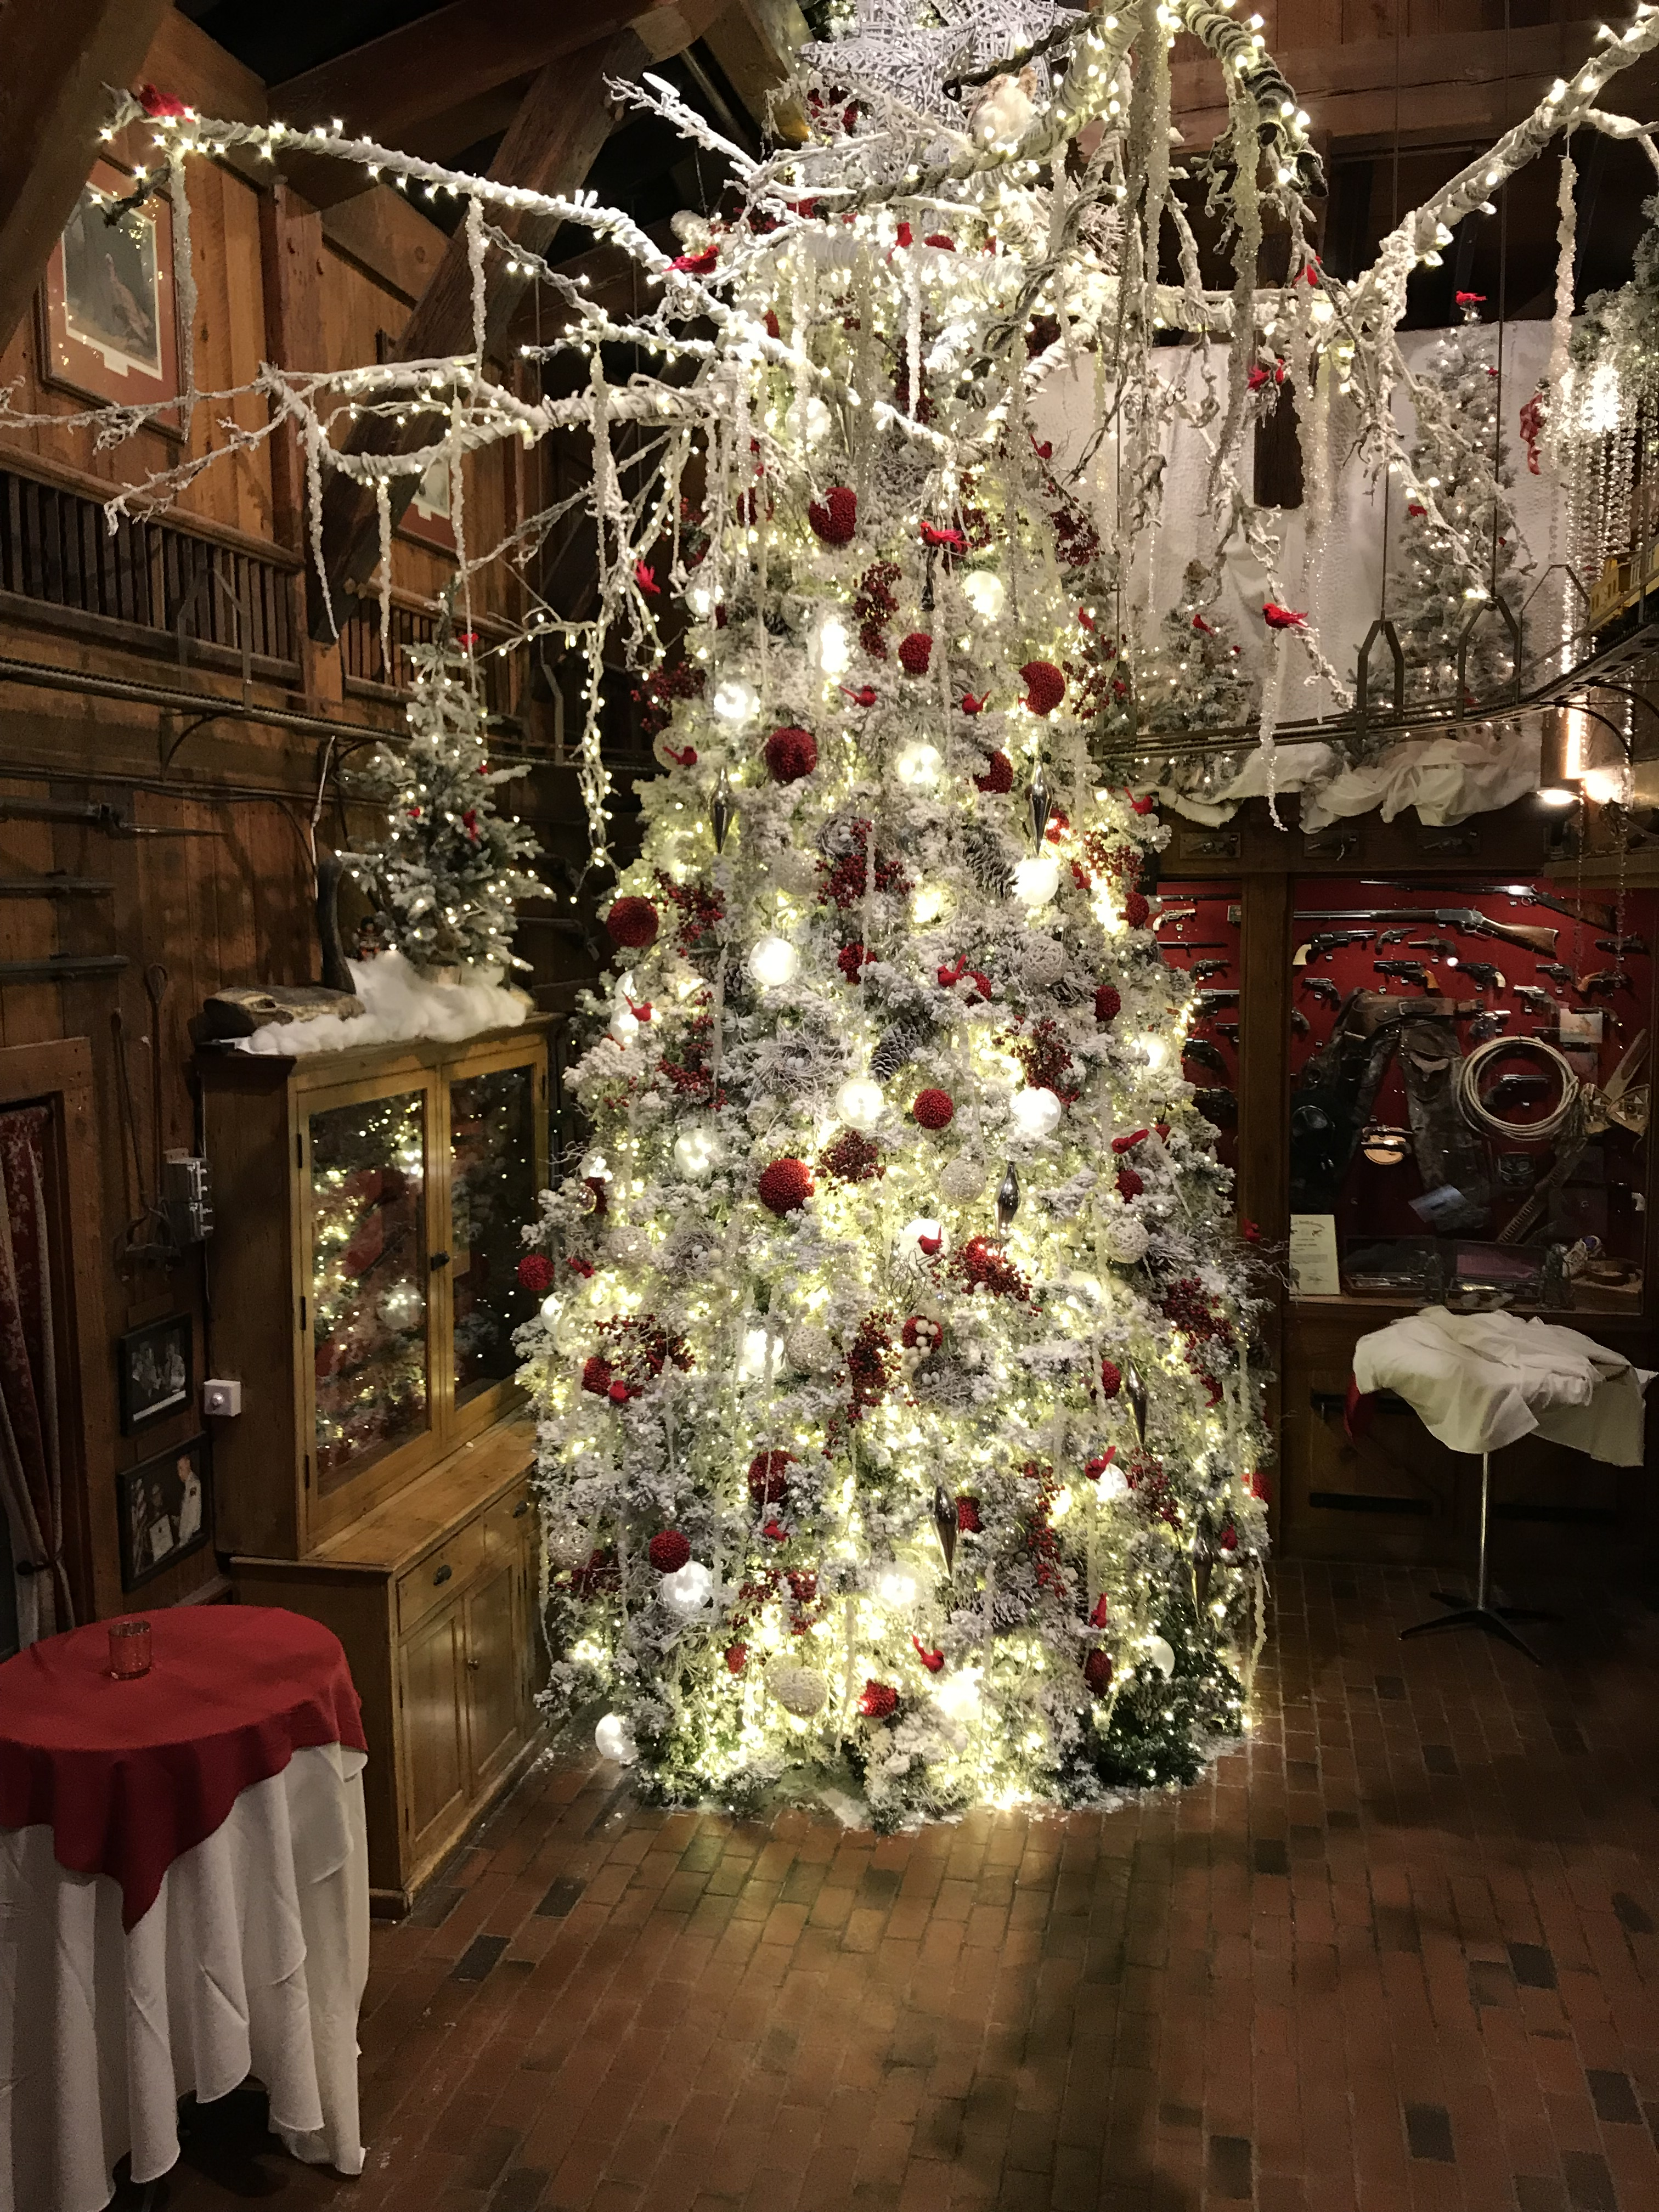 wtvd. Angus Barn is bringing in the Christmas joy